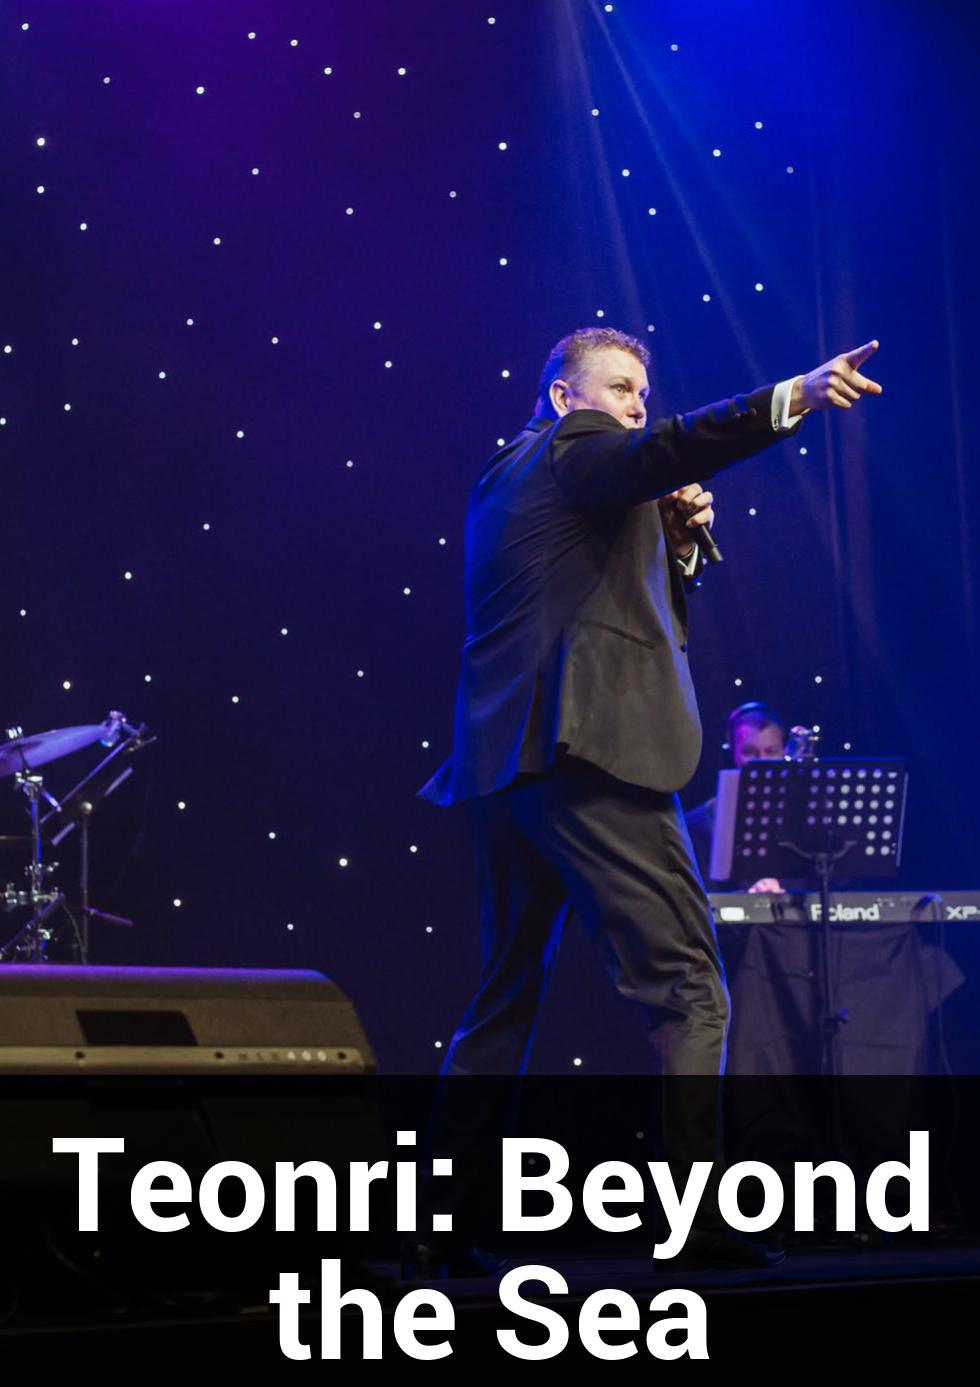 Teonri: Beyond the Sea at Sunnybank Performing Arts & Cultural Centre